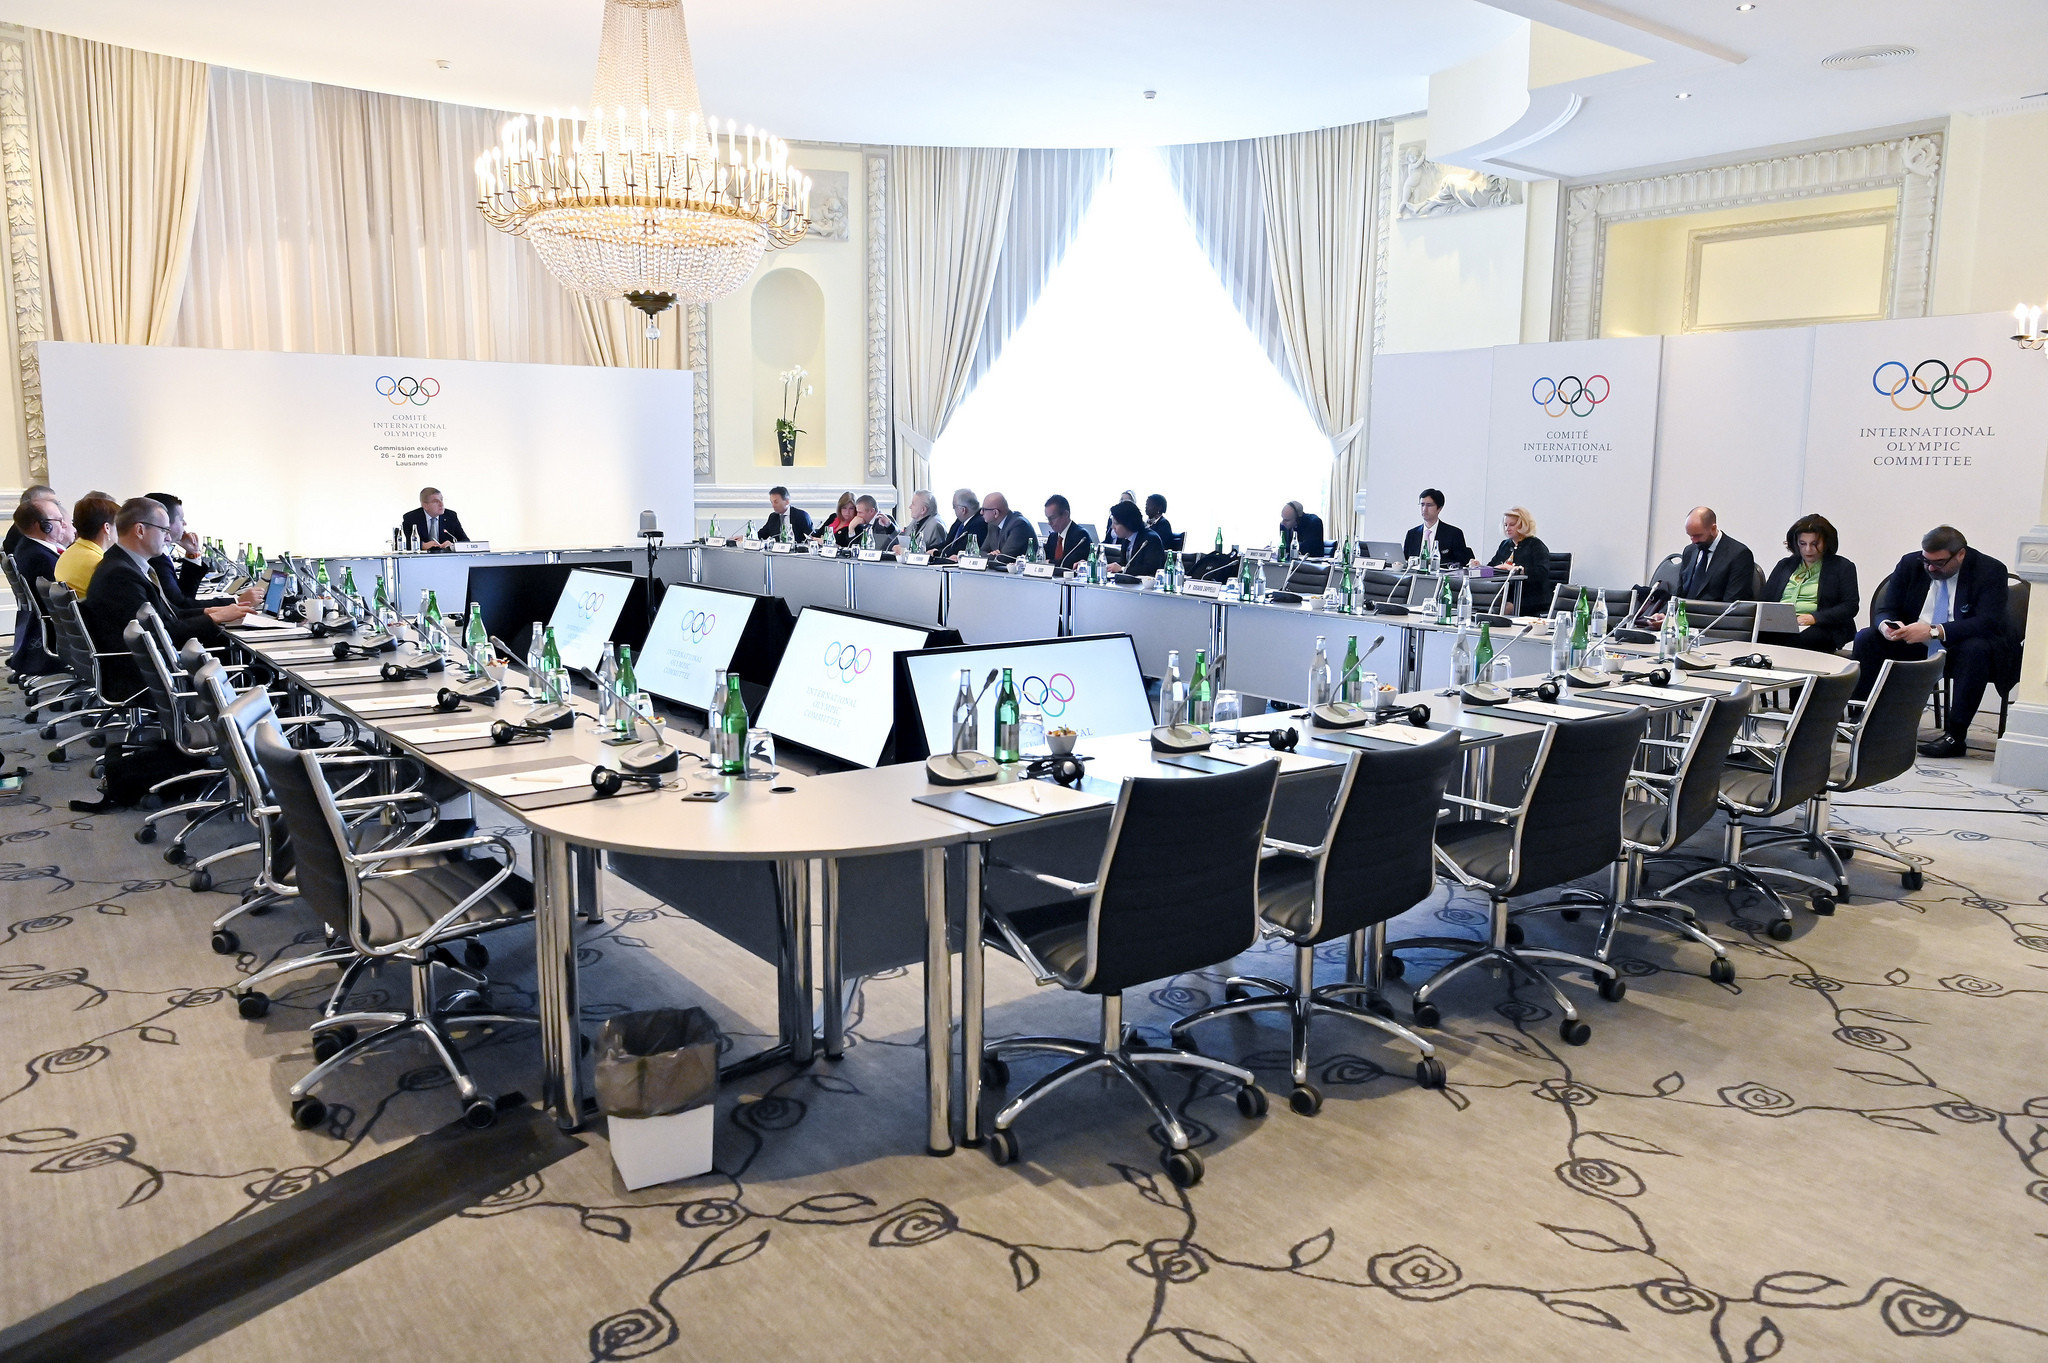 The IOC Executive Board is to receive an interim report tomorrow from the committee leading an inquiry into AIBA, which is expected to give some indication as to whether they will be allowed to organise boxing at Tokyo 2020 ©IOC